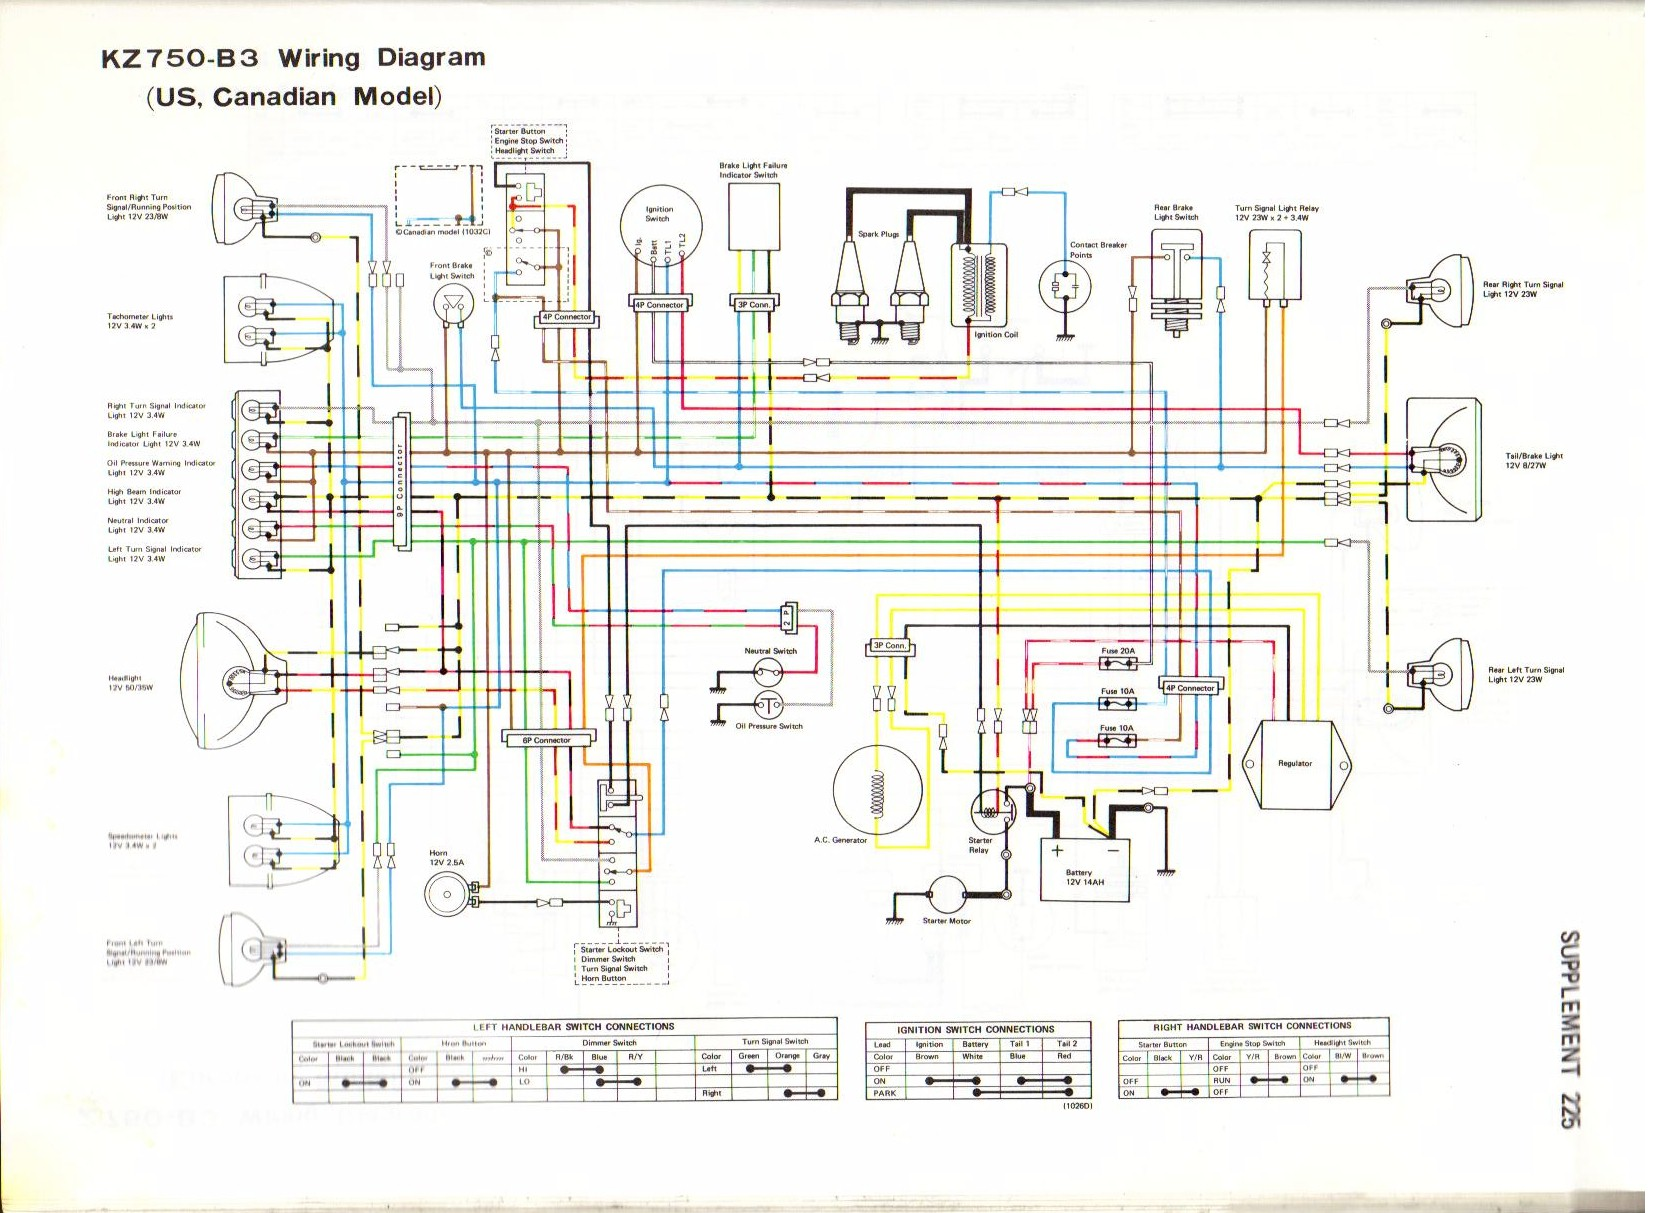 wiring harness 2008 zx14 trusted schematics wiring diagrams u2022 rh bestbooksrichtreasures com  kawasaki zx14 wiring diagram